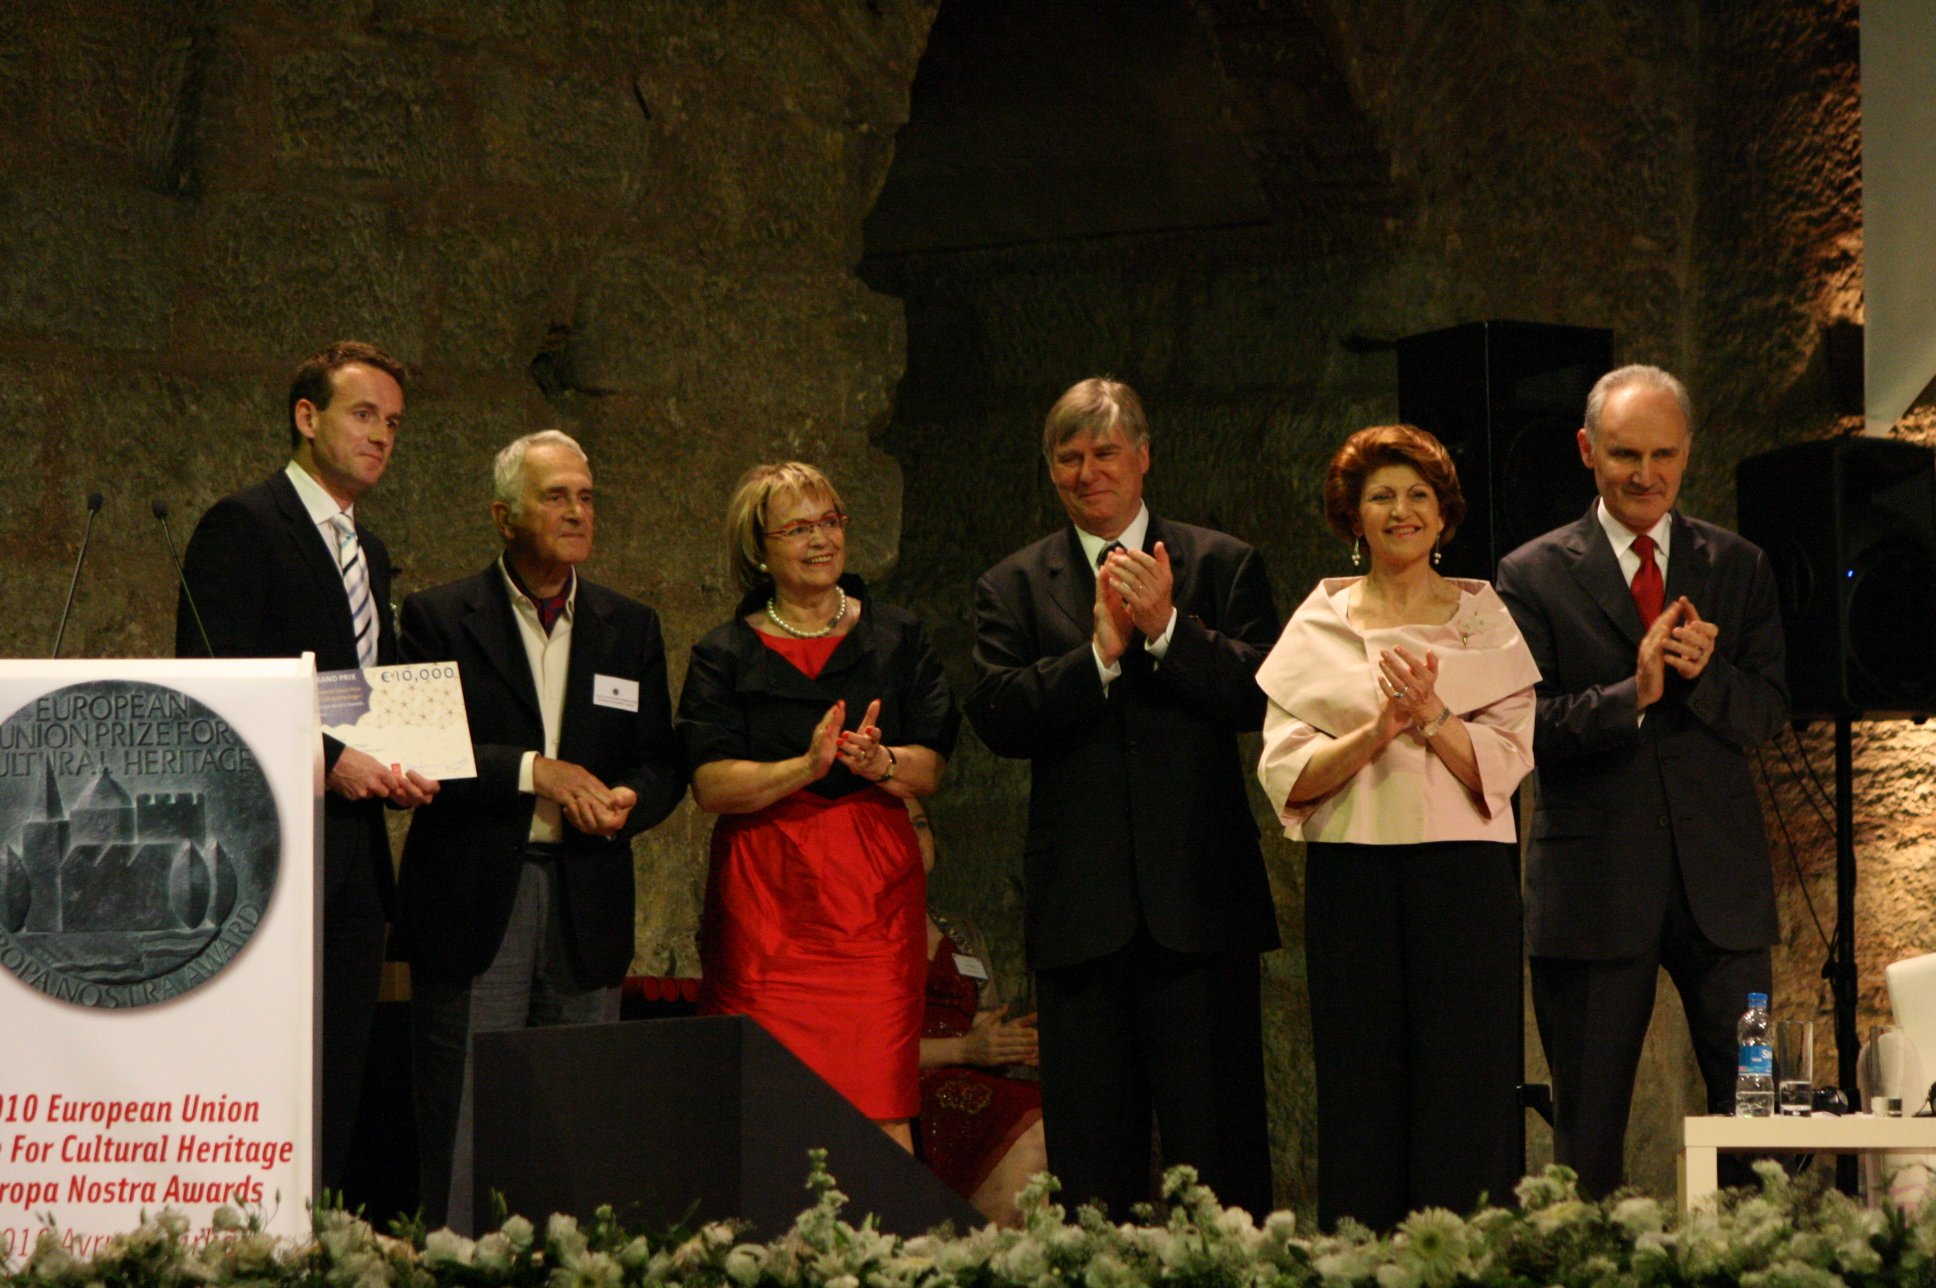 European Union Prize for Cultural Heritage/Europa Nostra Awards ceremony